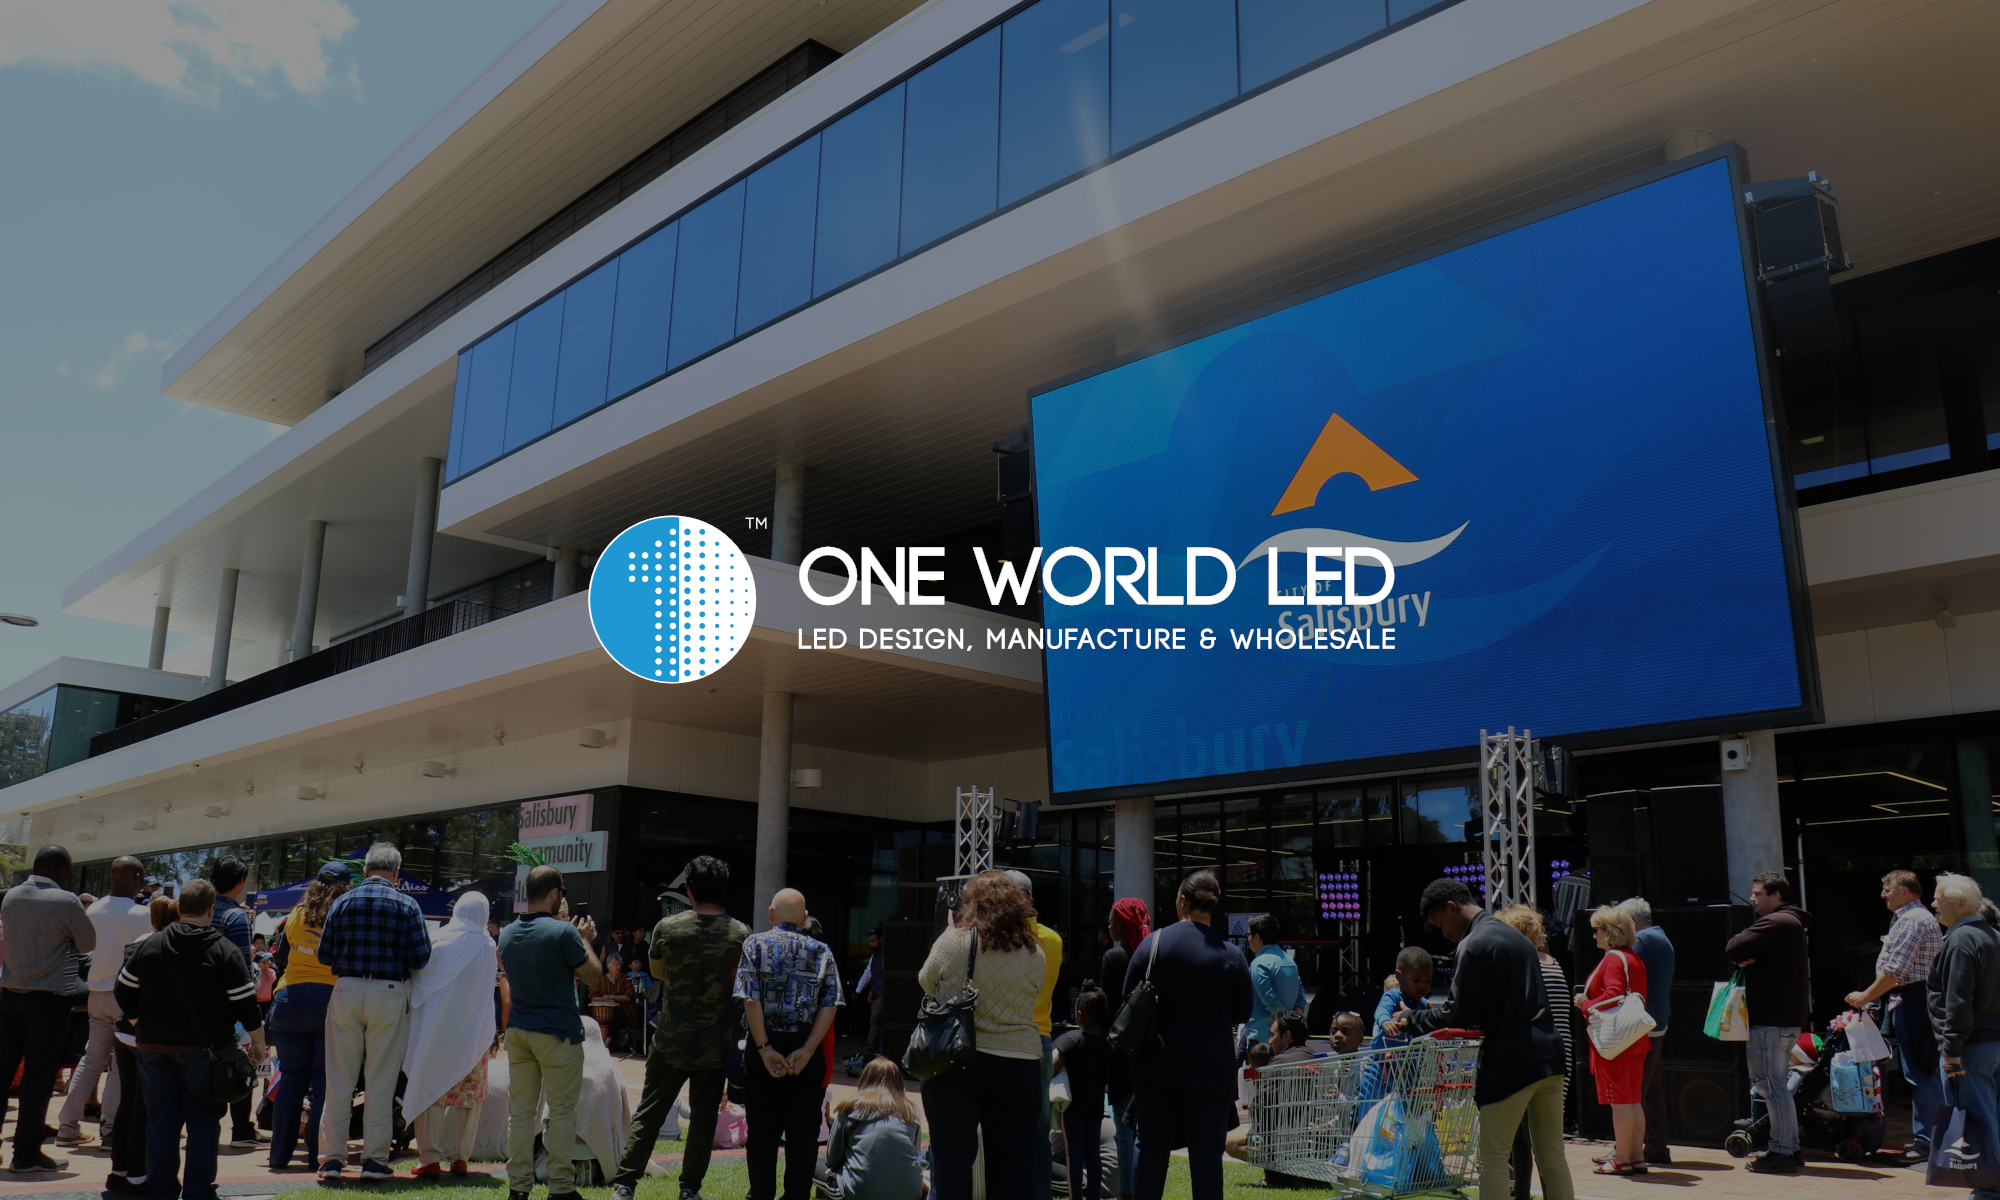 One World LED